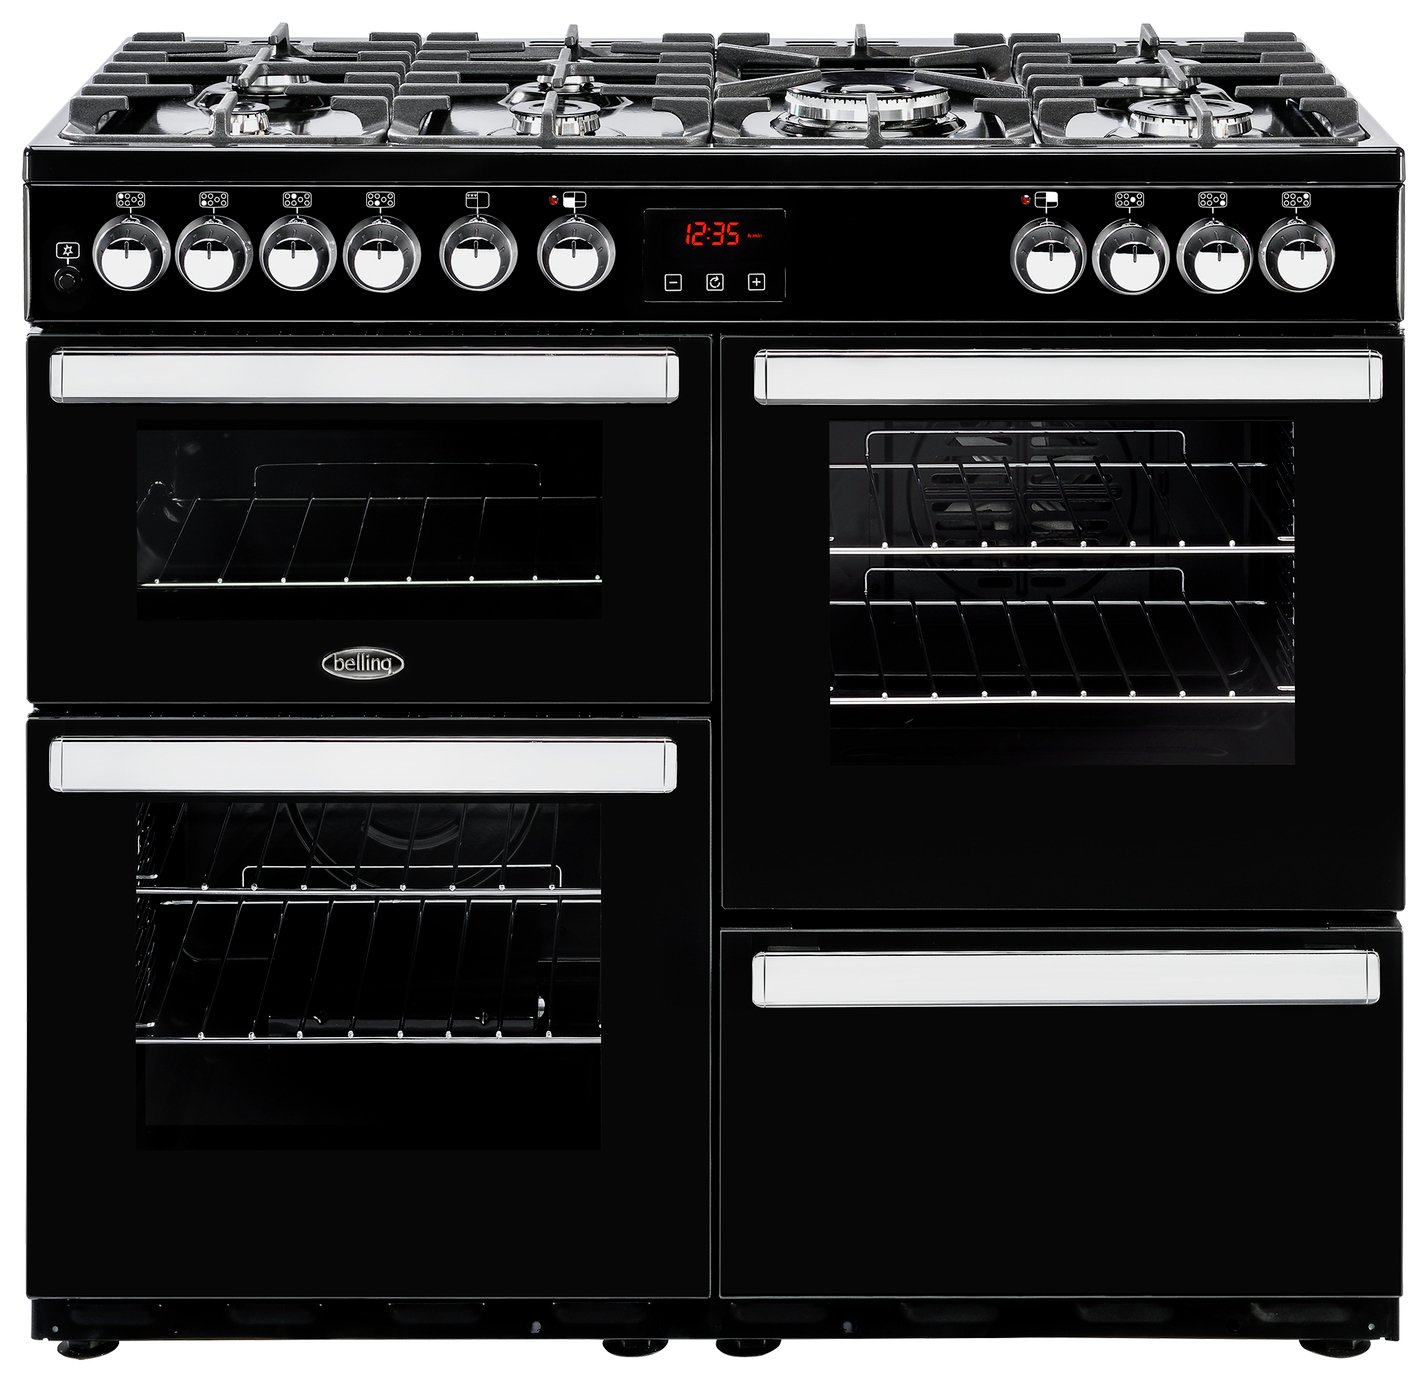 Belling Cookcentre 100DFT 100cm Range Cooker - Black